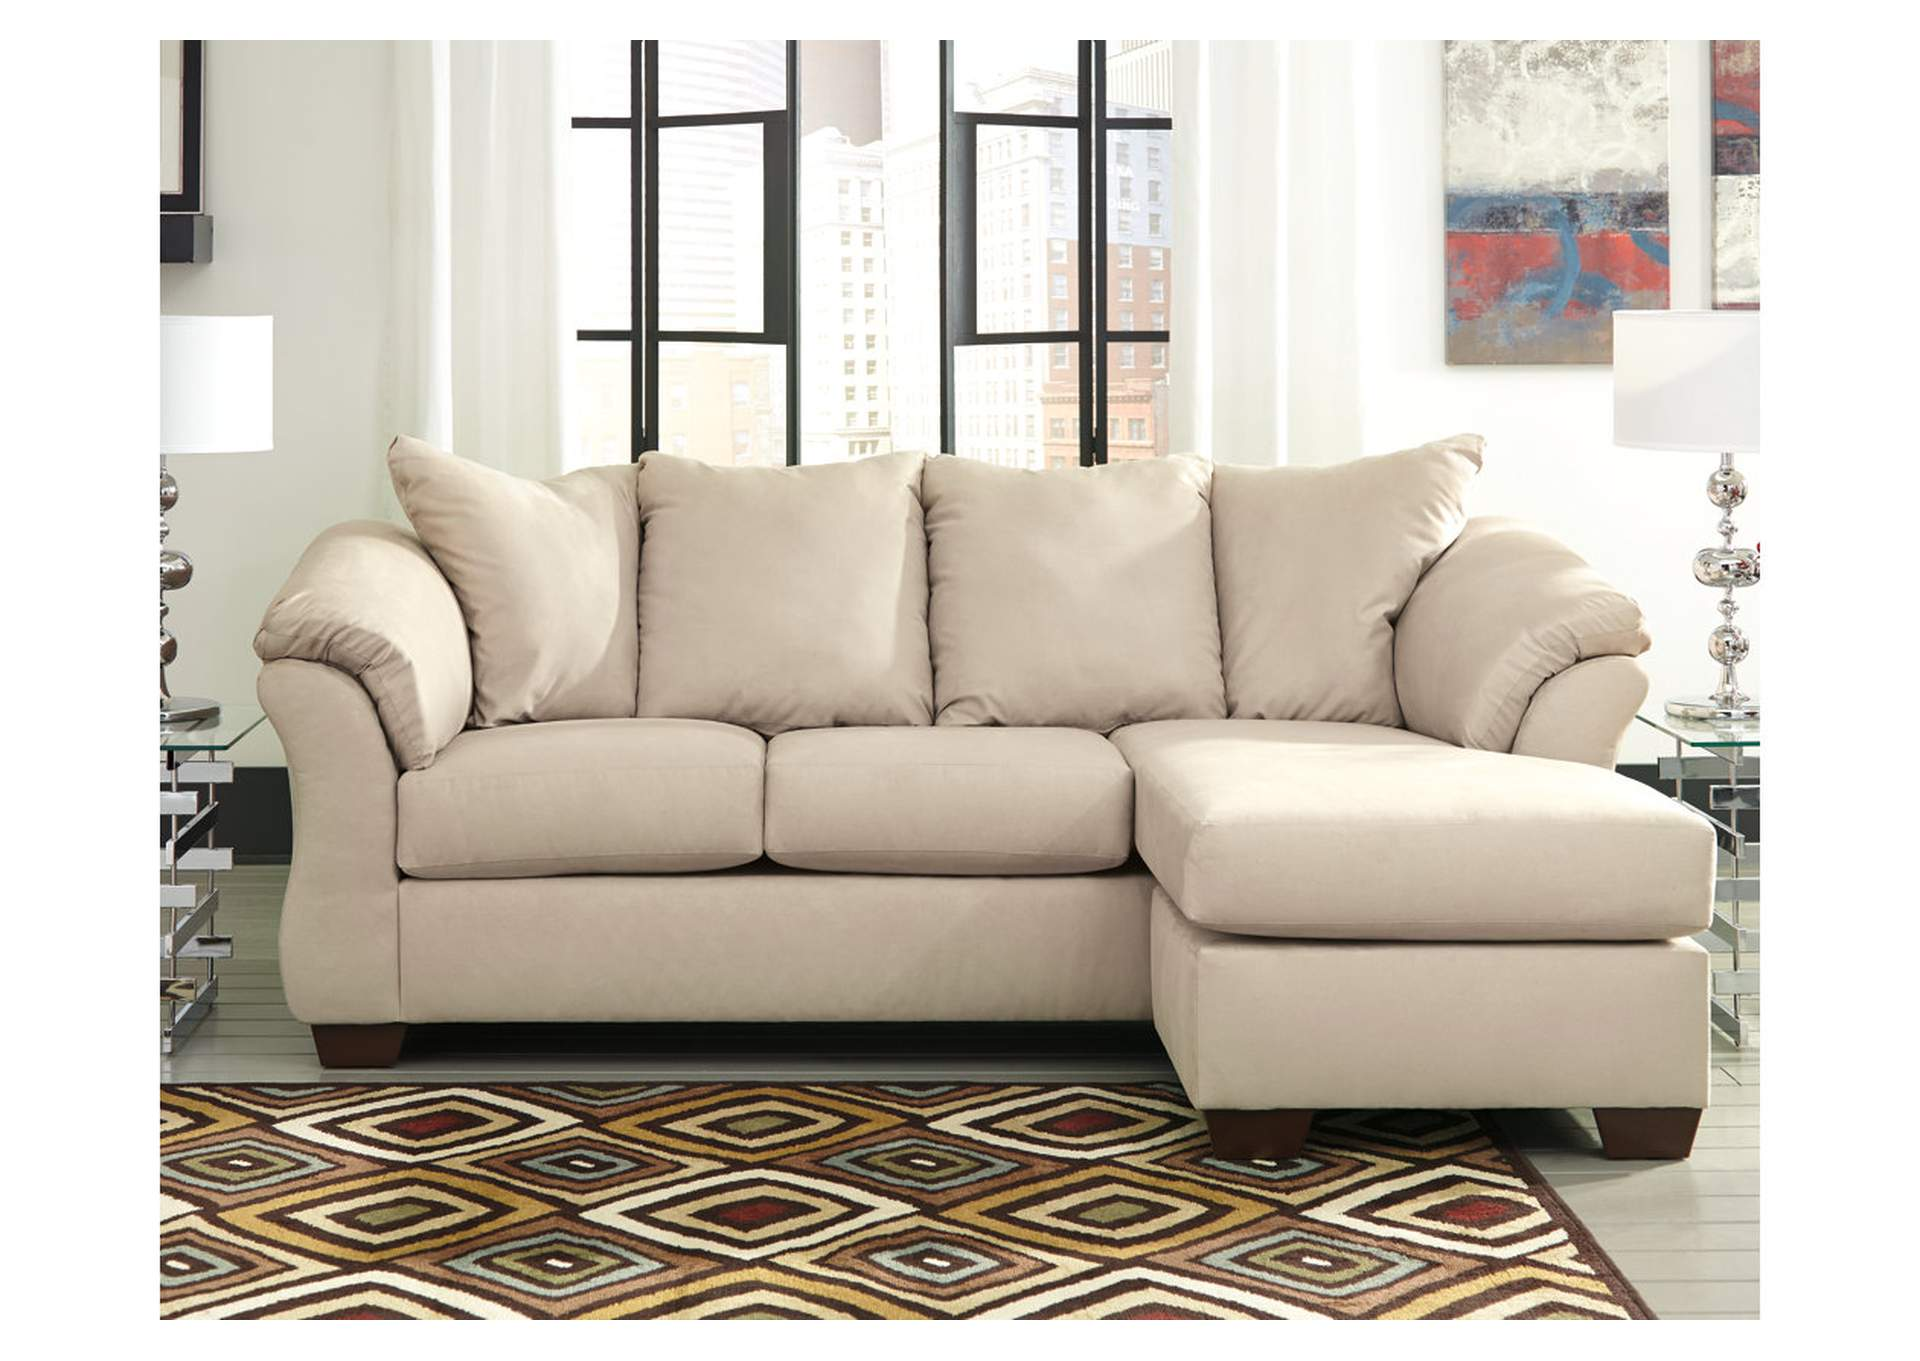 Darcy Stone Sofa Chaise,Signature Design By Ashley